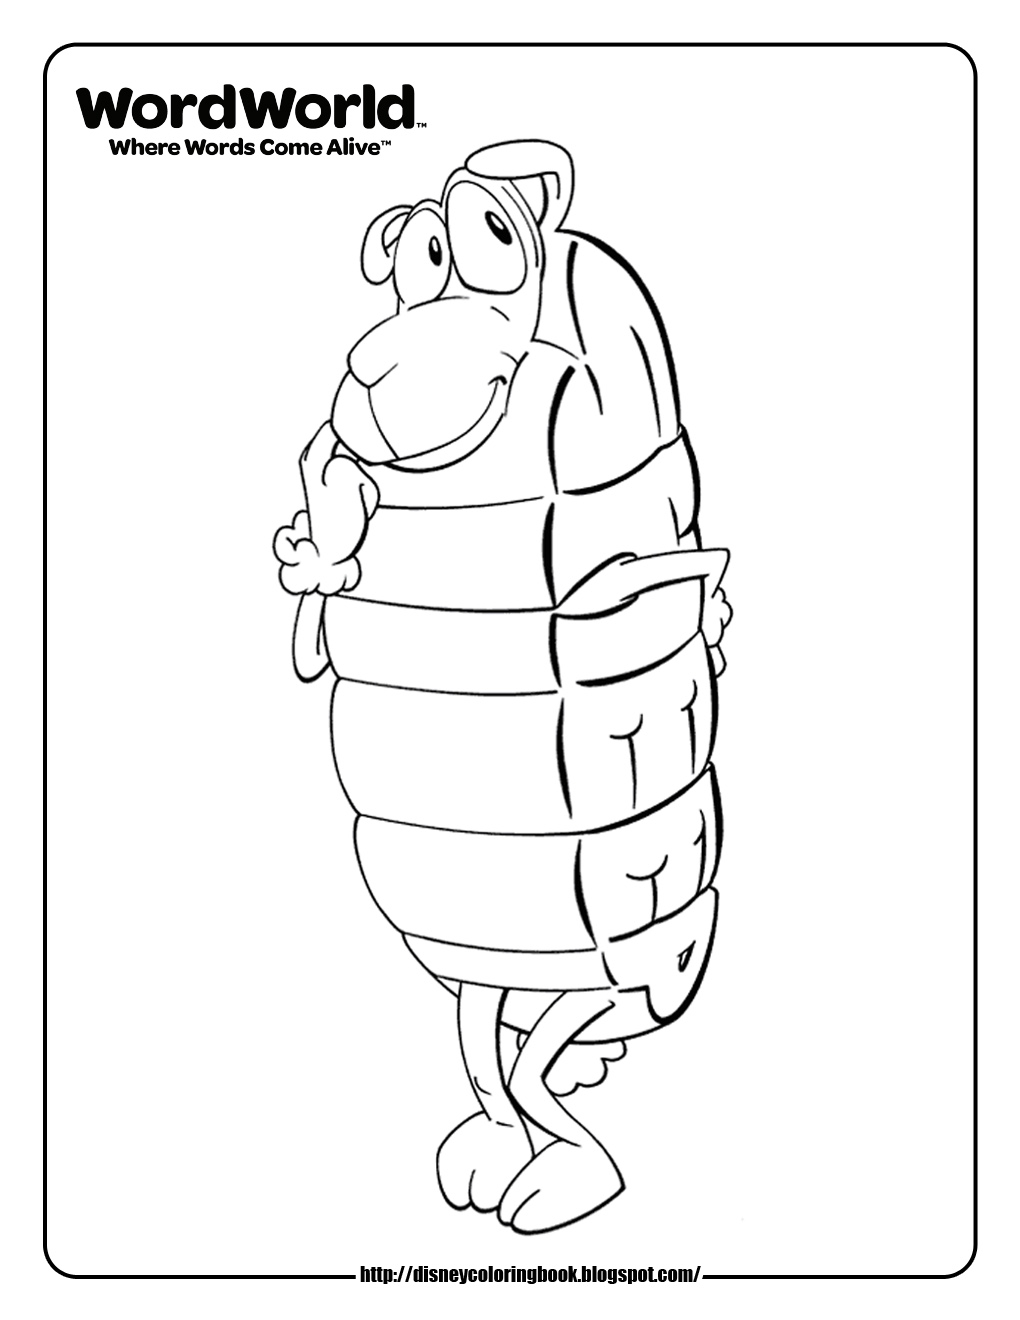 word world coloring pages # 10